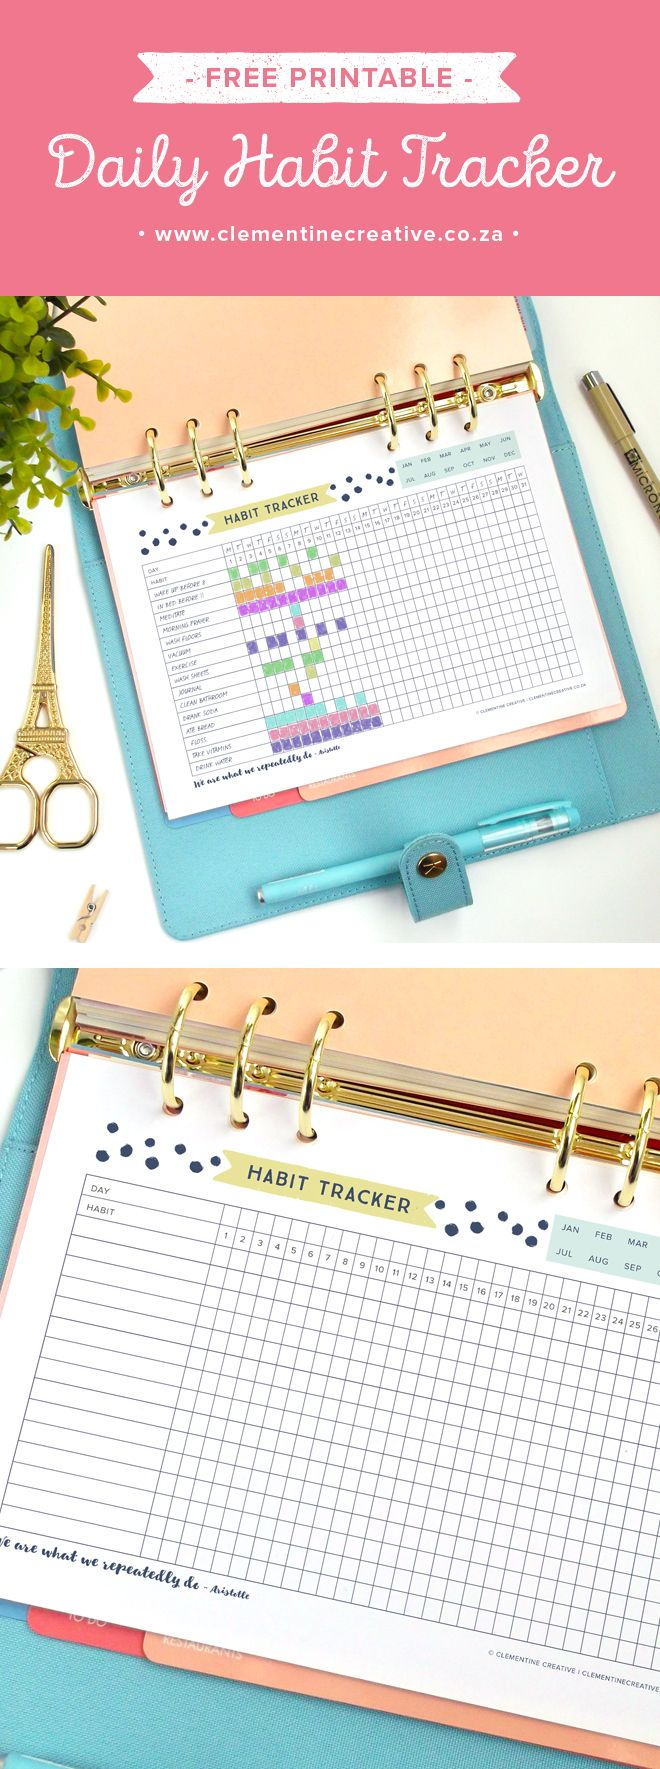 Free printable Daily habit tracker by Clementine creative.